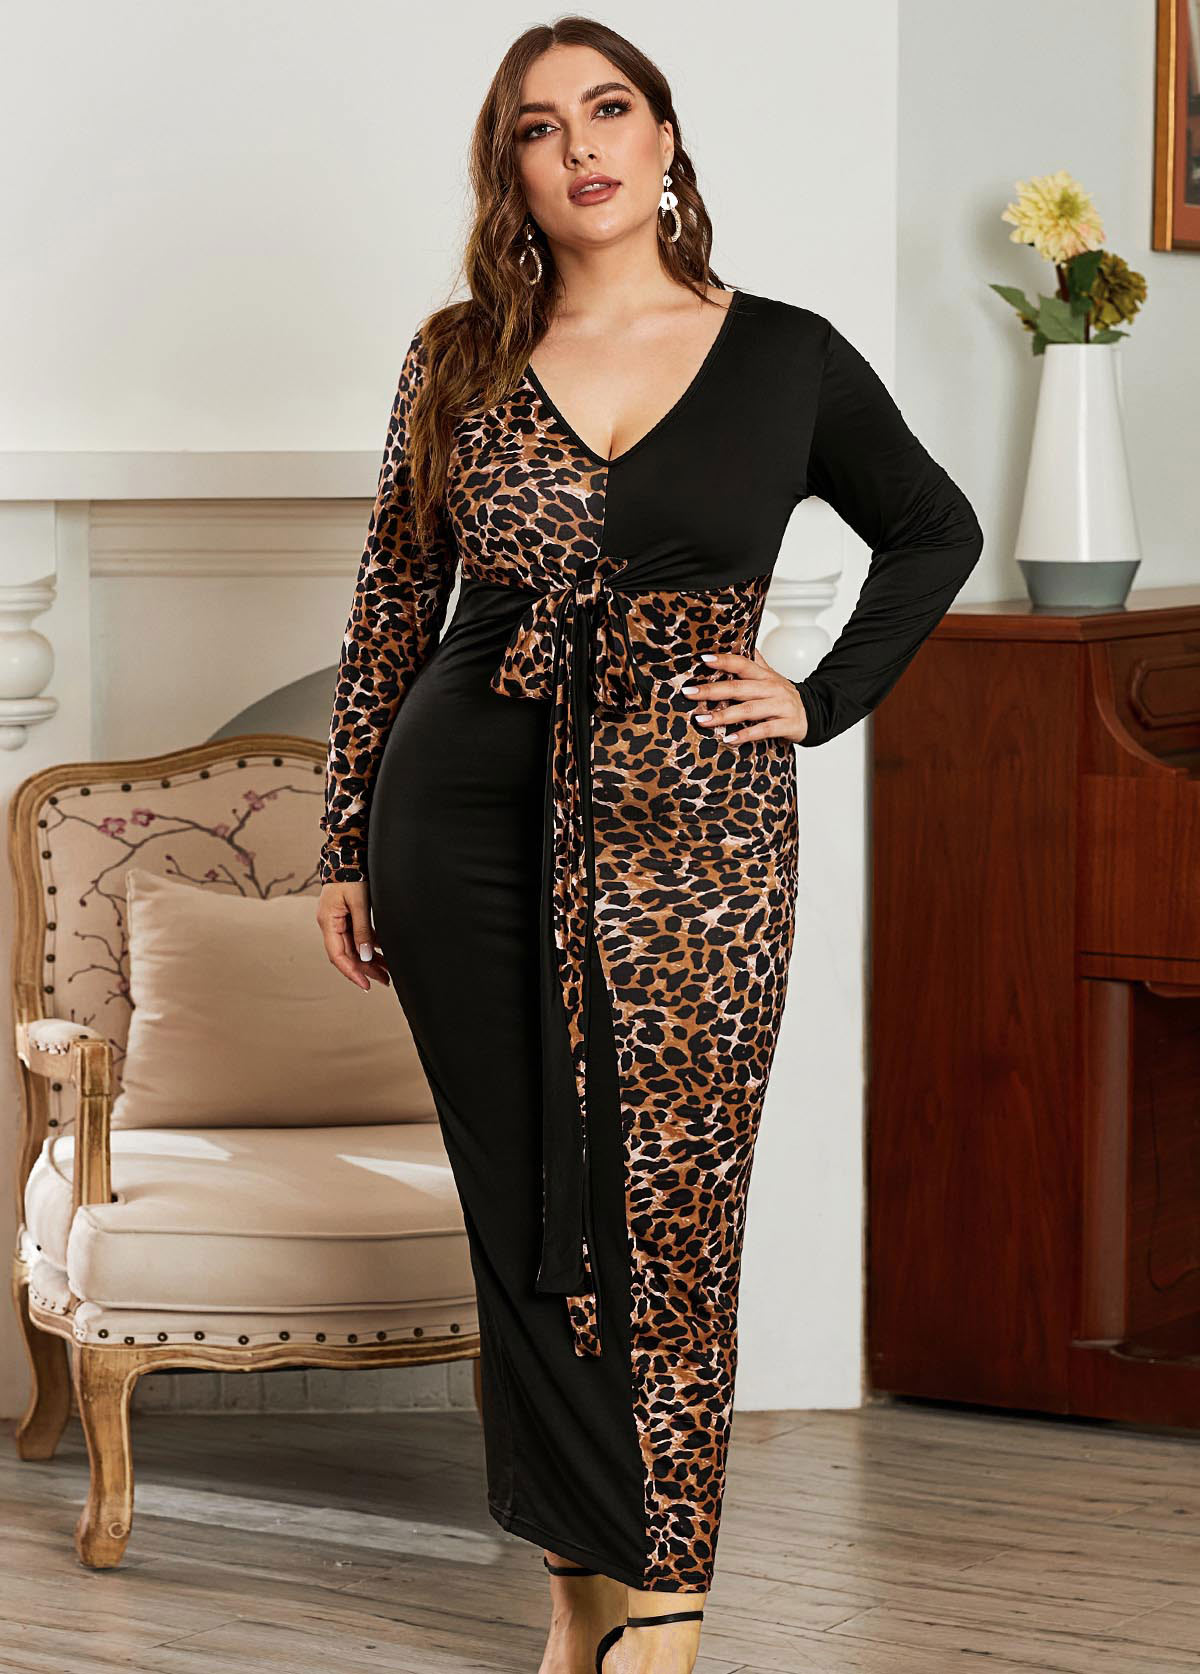 Leopard Print Knot Detail Plus Size Maxi Dress